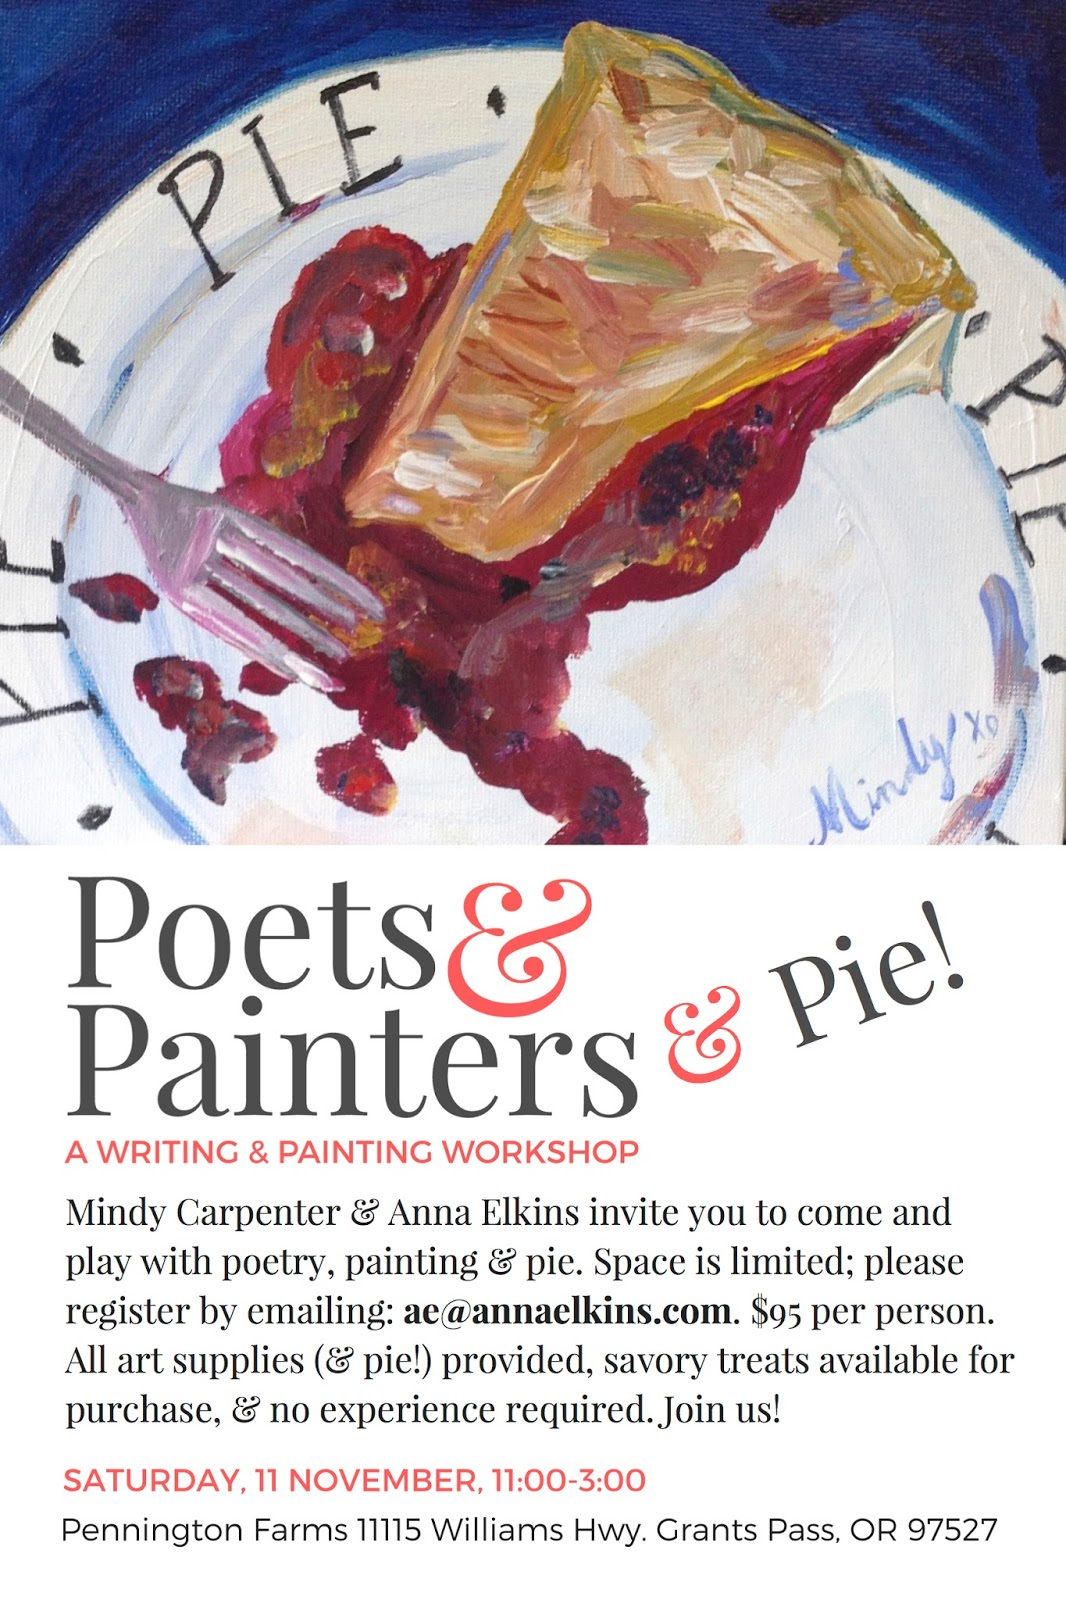 Yummy Alliteration: Poets & Painters & Pie at Pennington Farms!